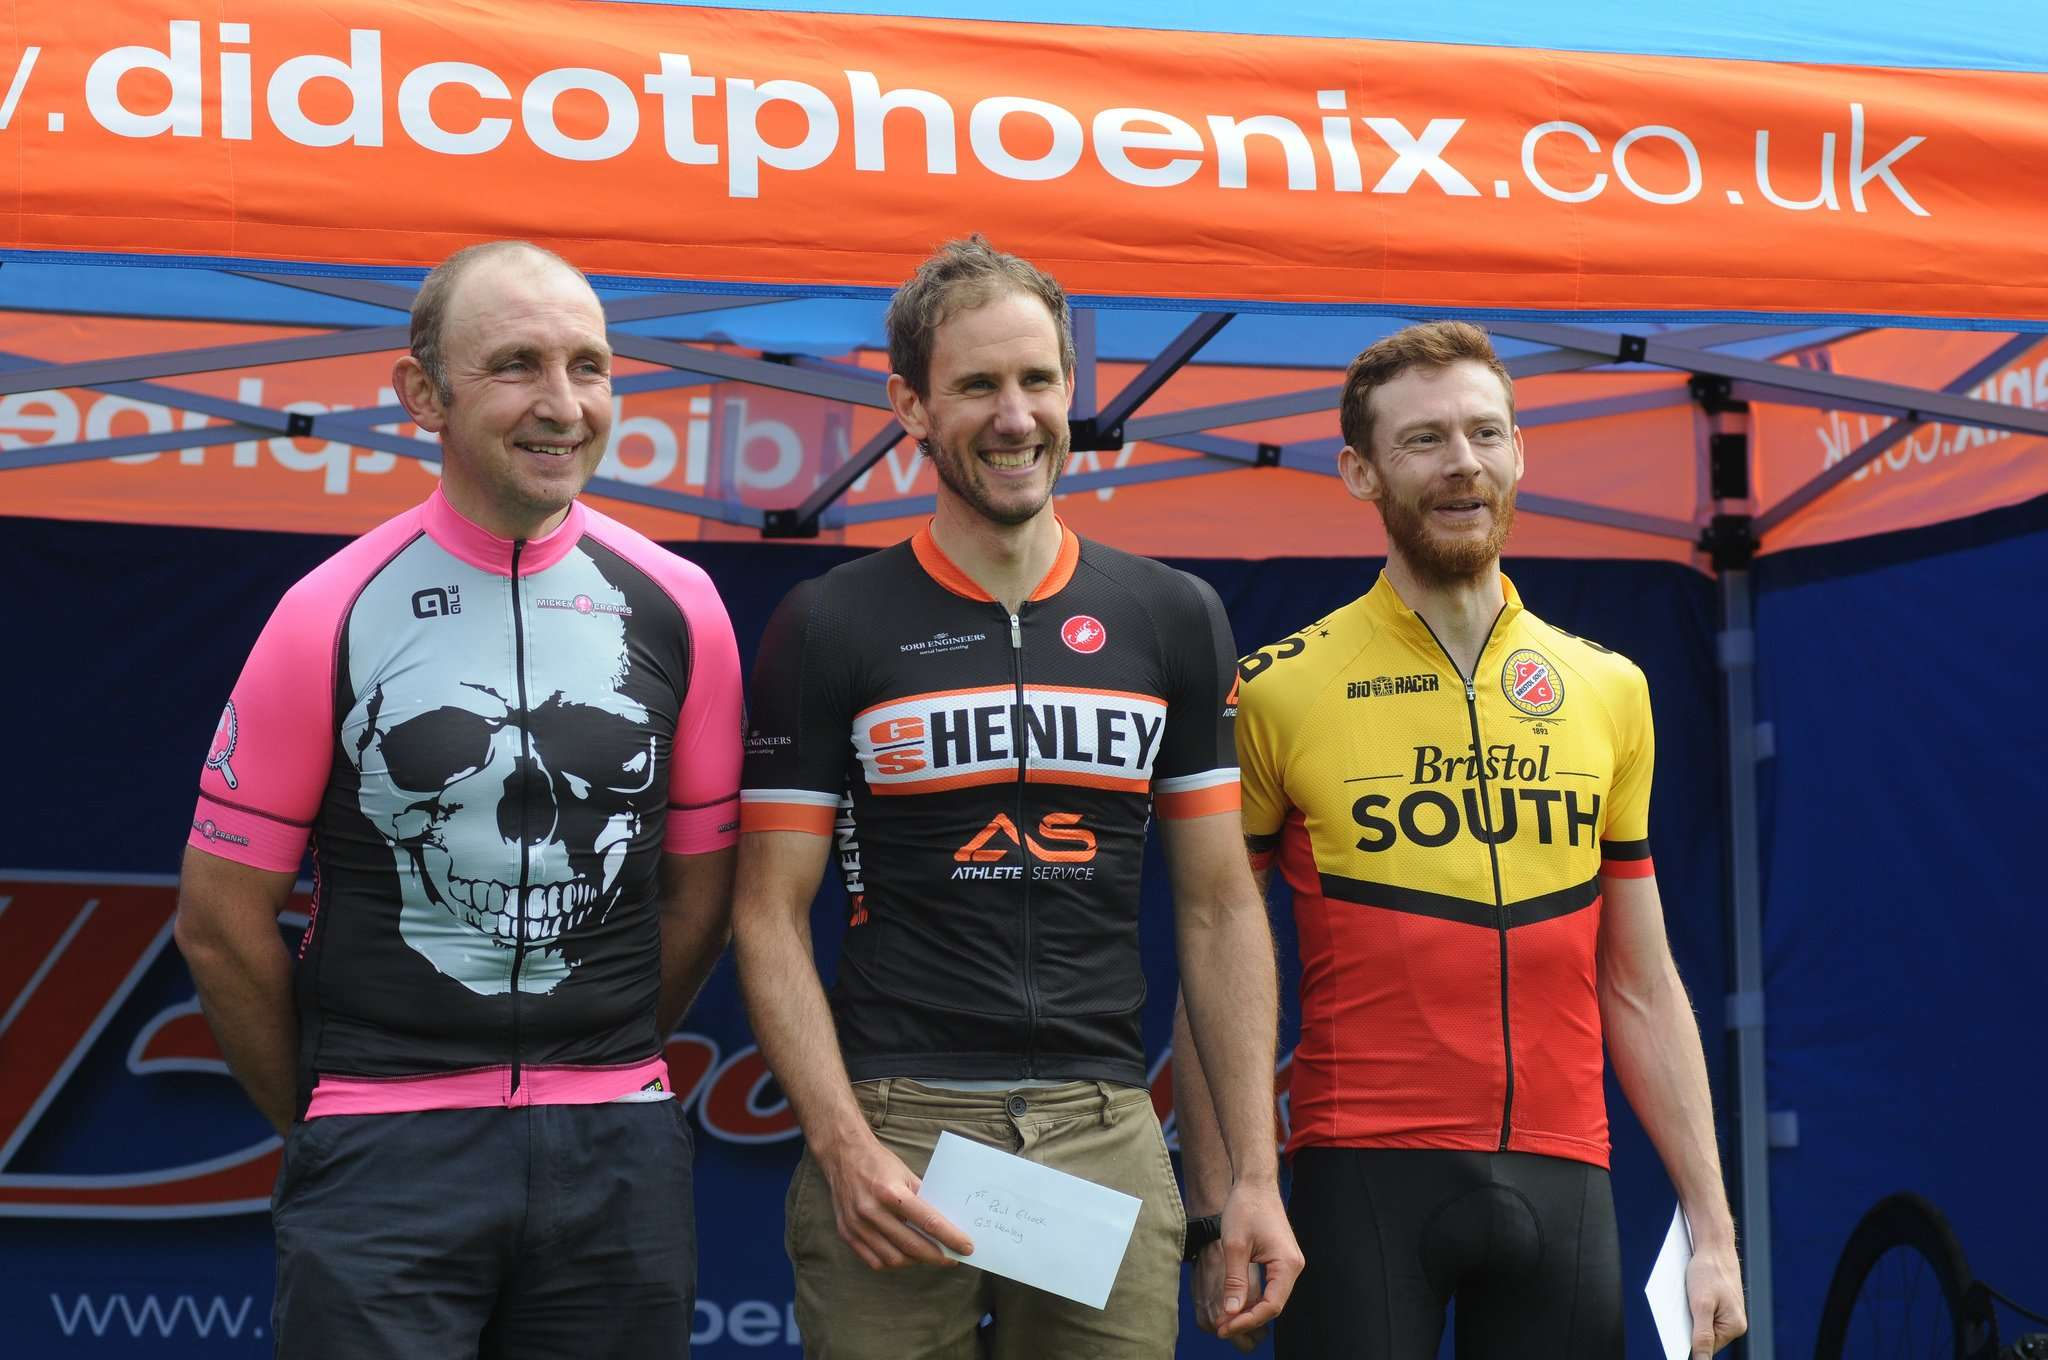 Result : ORRL – Round 2 – Didcot Phoenix / Great Shefford Road Race